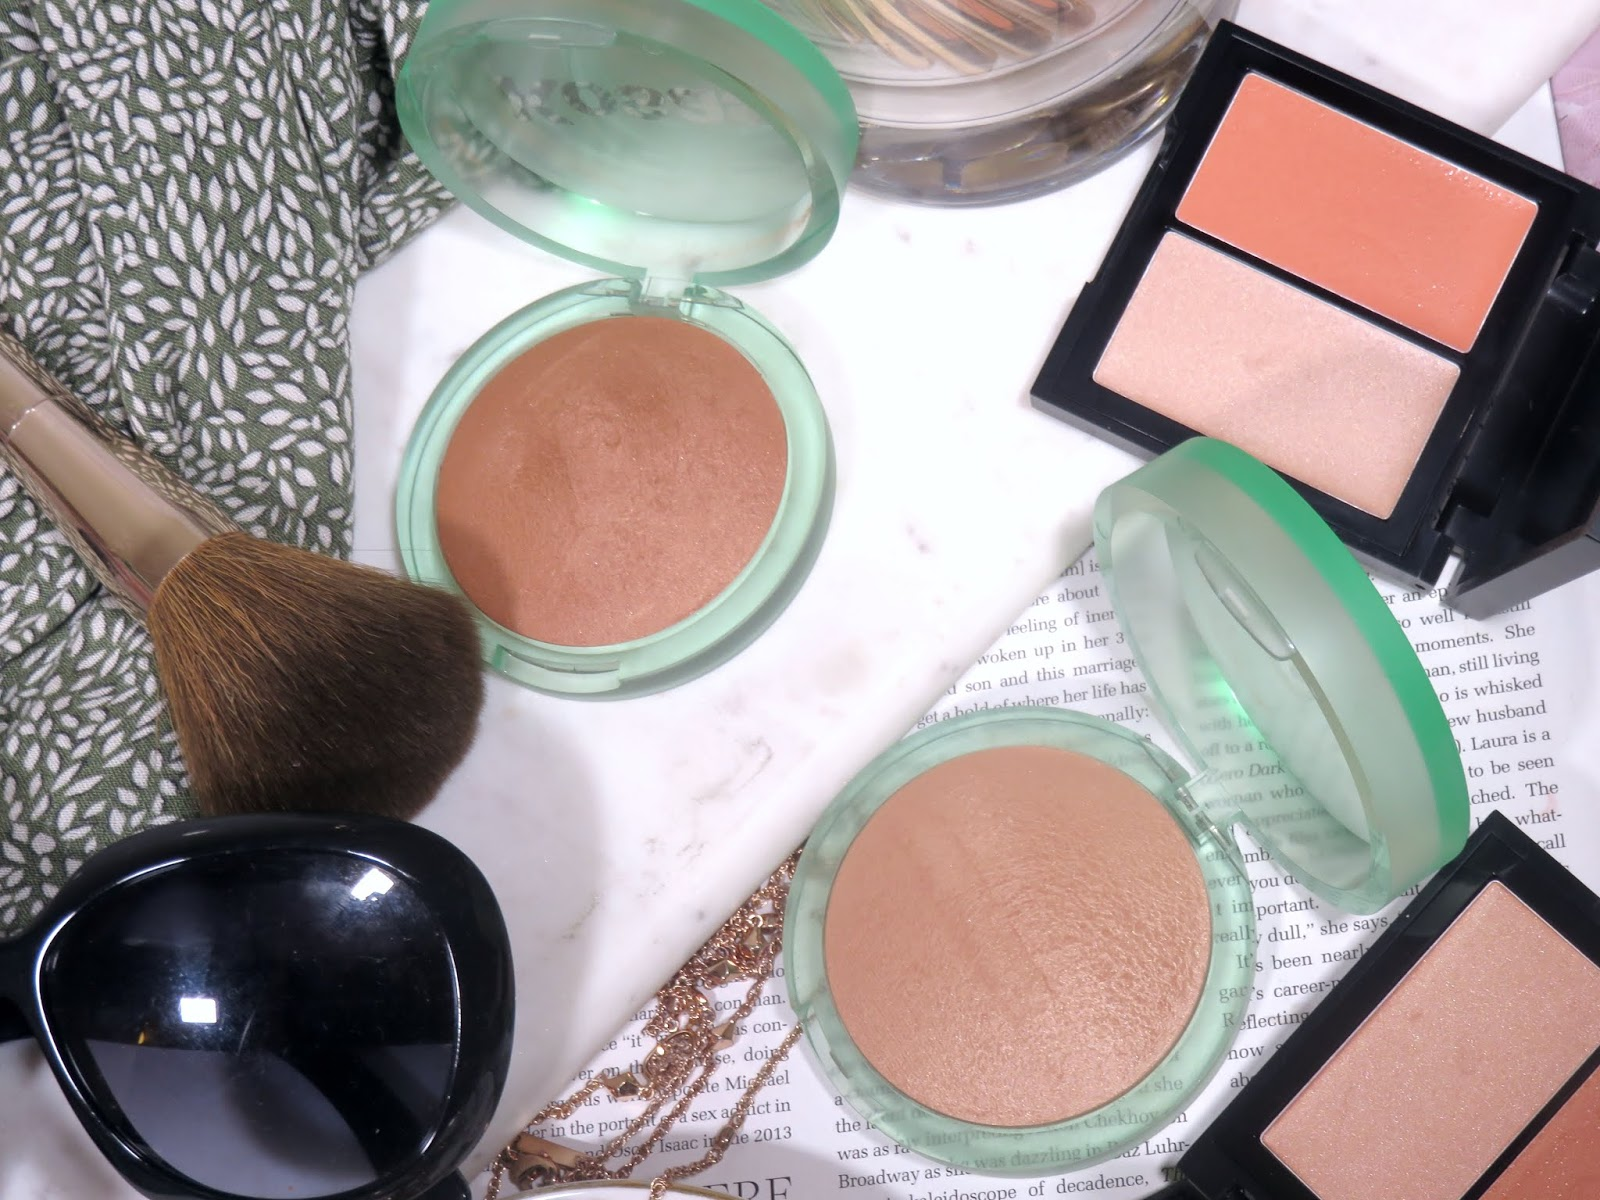 Kosas The Sun Show Moisturizing Baked Bronzer Review and Swatches